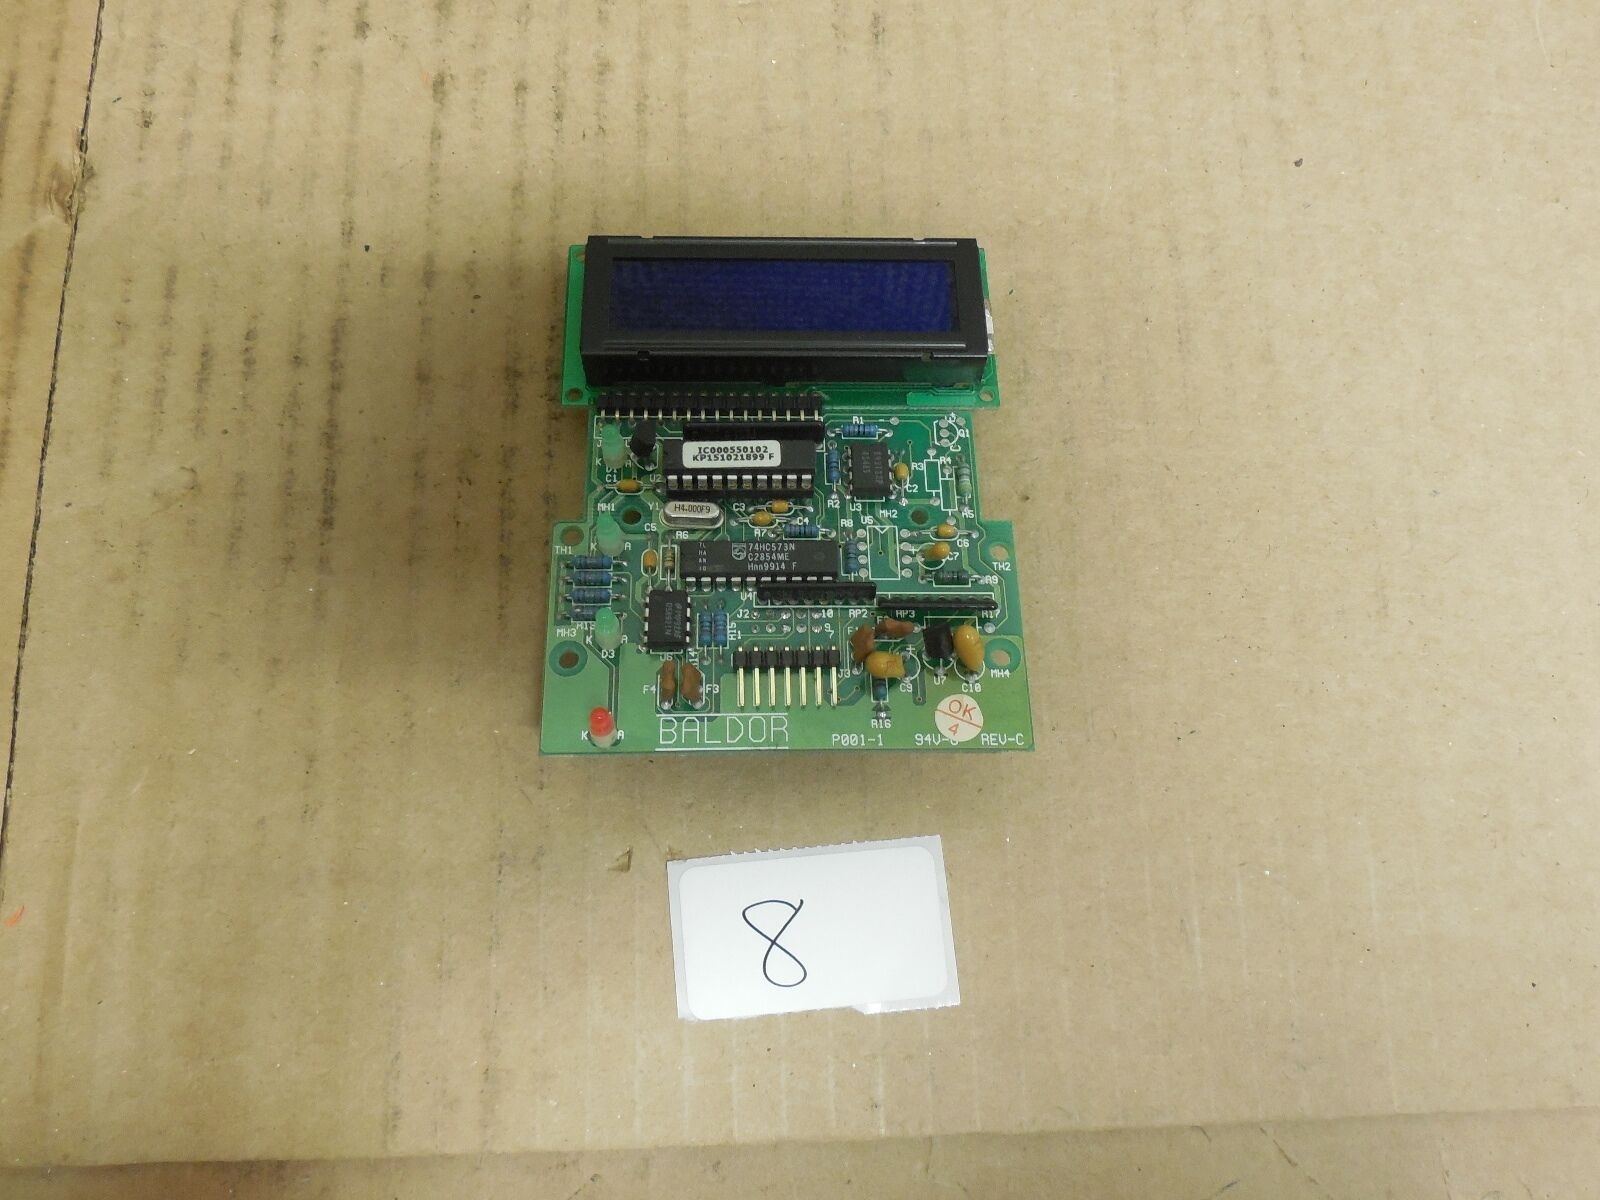 BALDOR CIRCUIT BOARD P001-1 REV C FOR DRIVE DISPLAY P191-2A